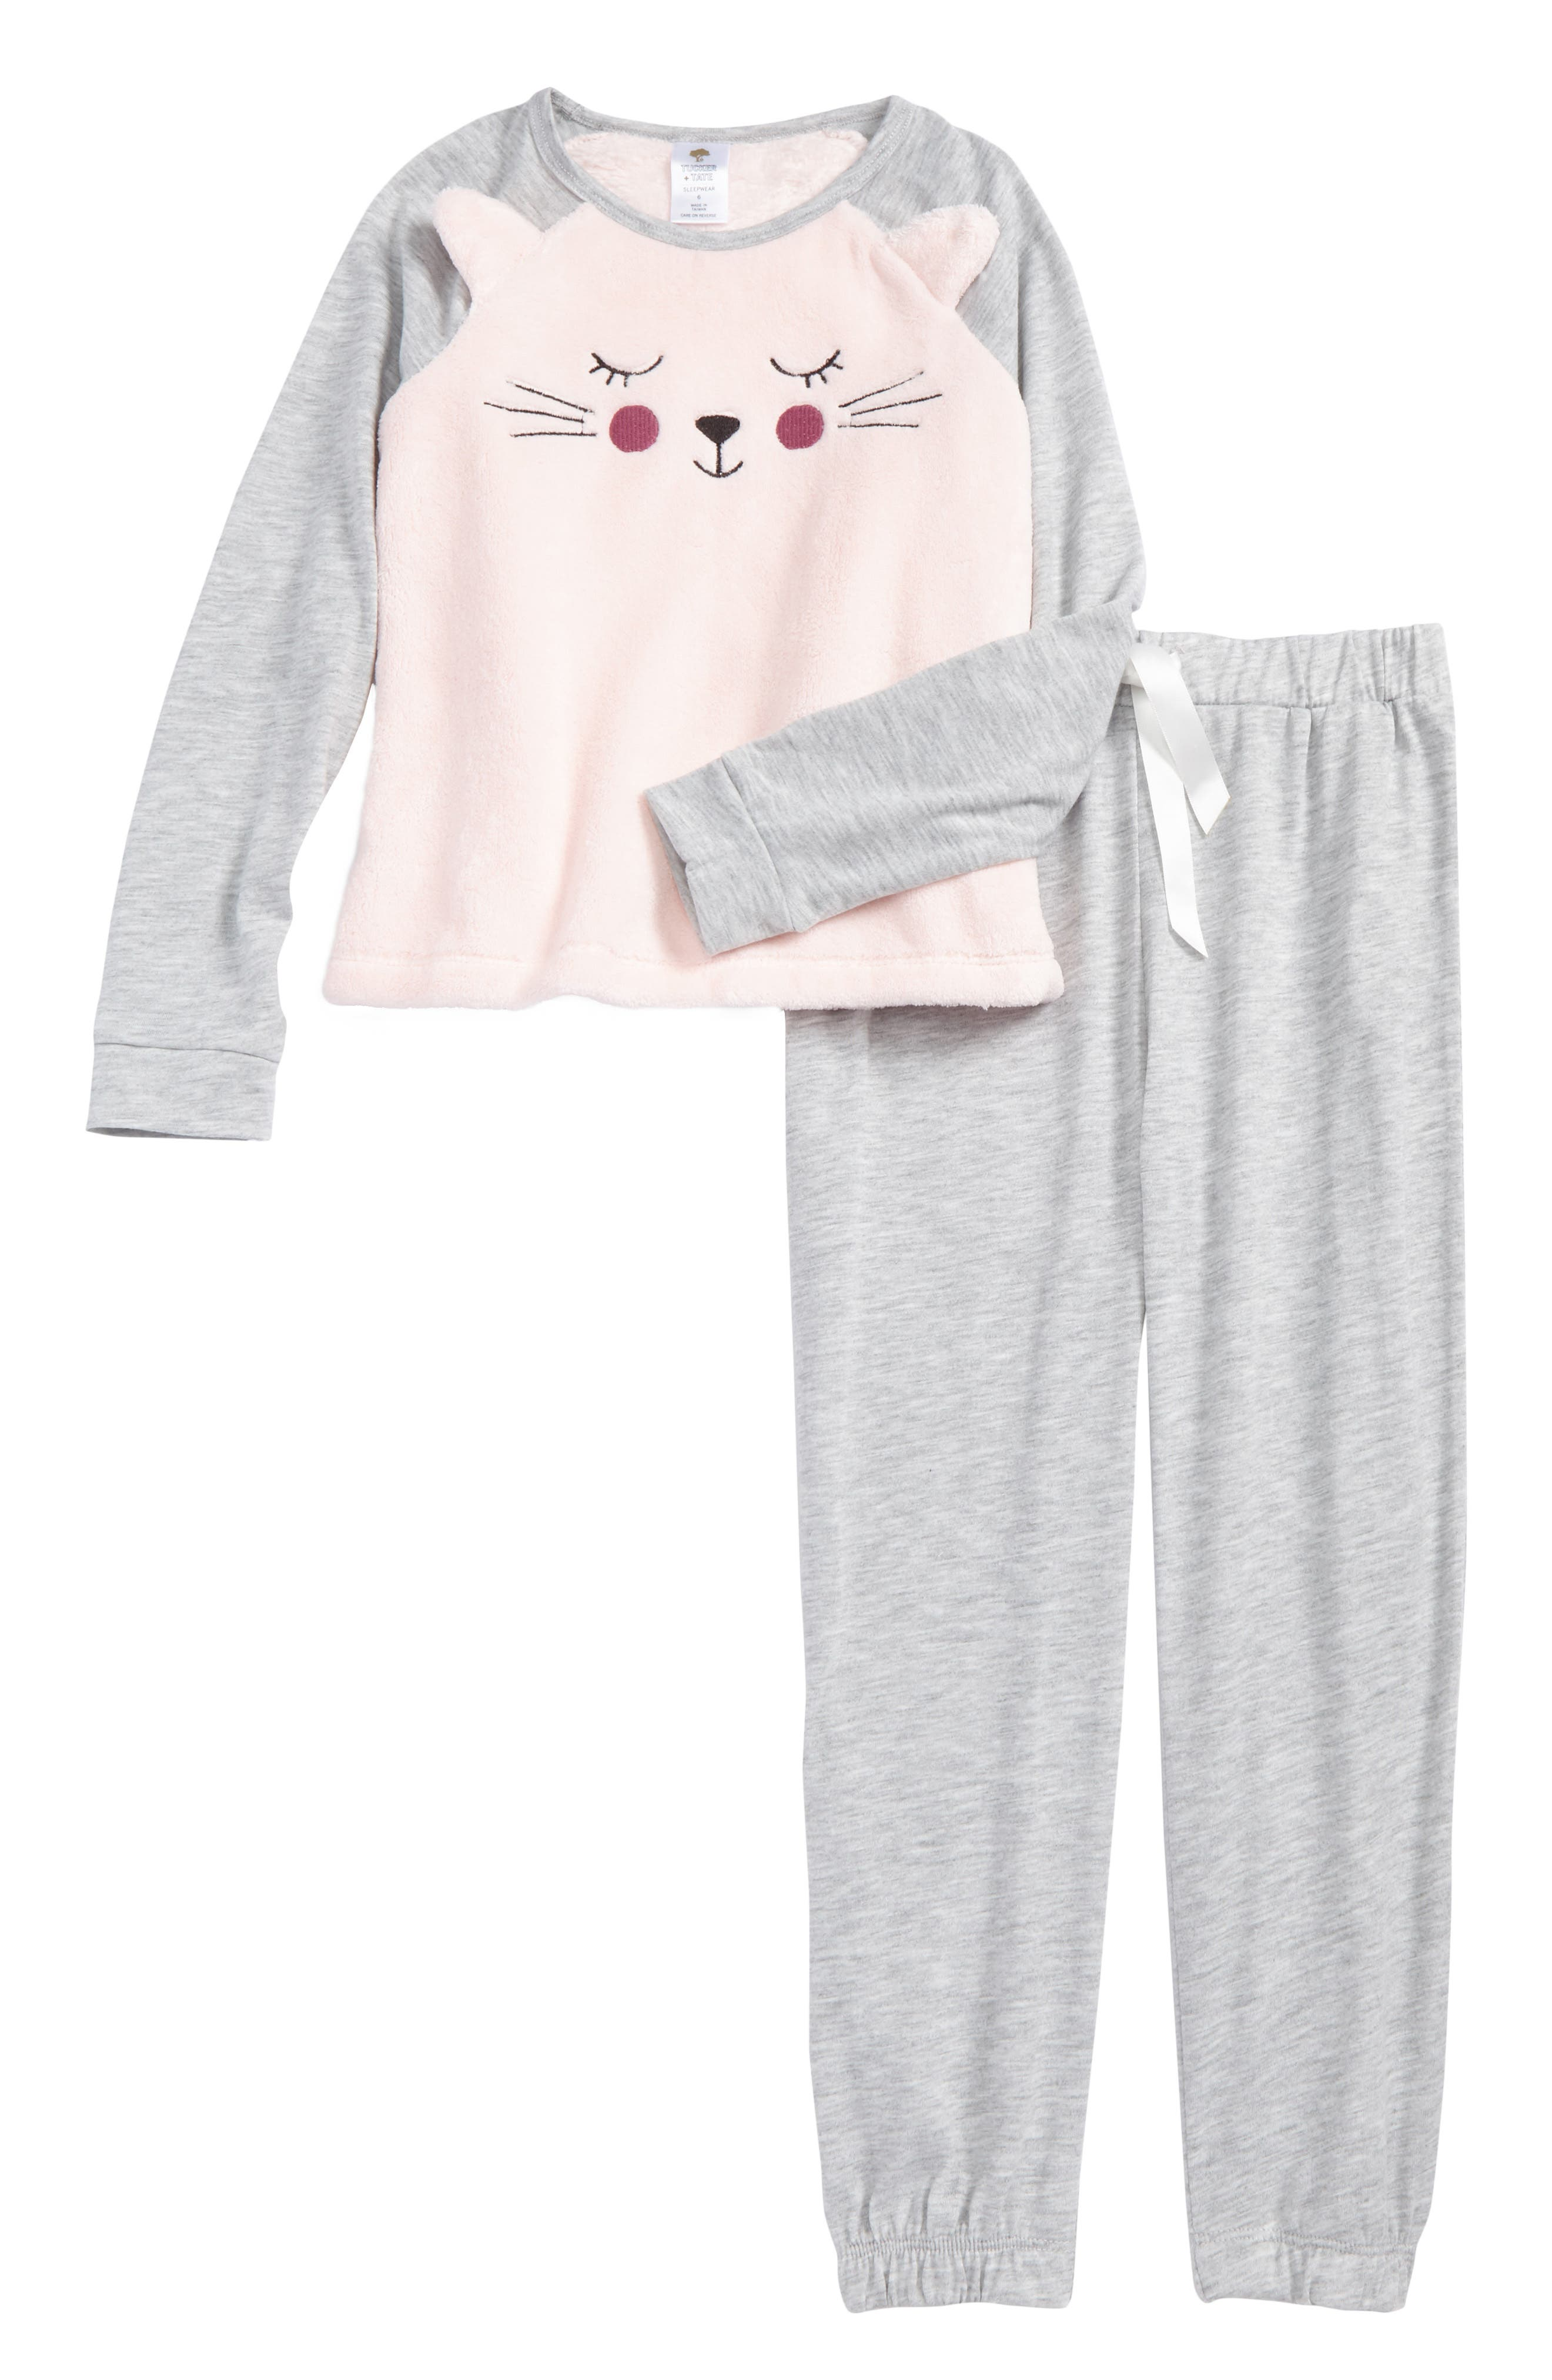 Animal Face Two-Piece Pajamas,                             Main thumbnail 1, color,                             050